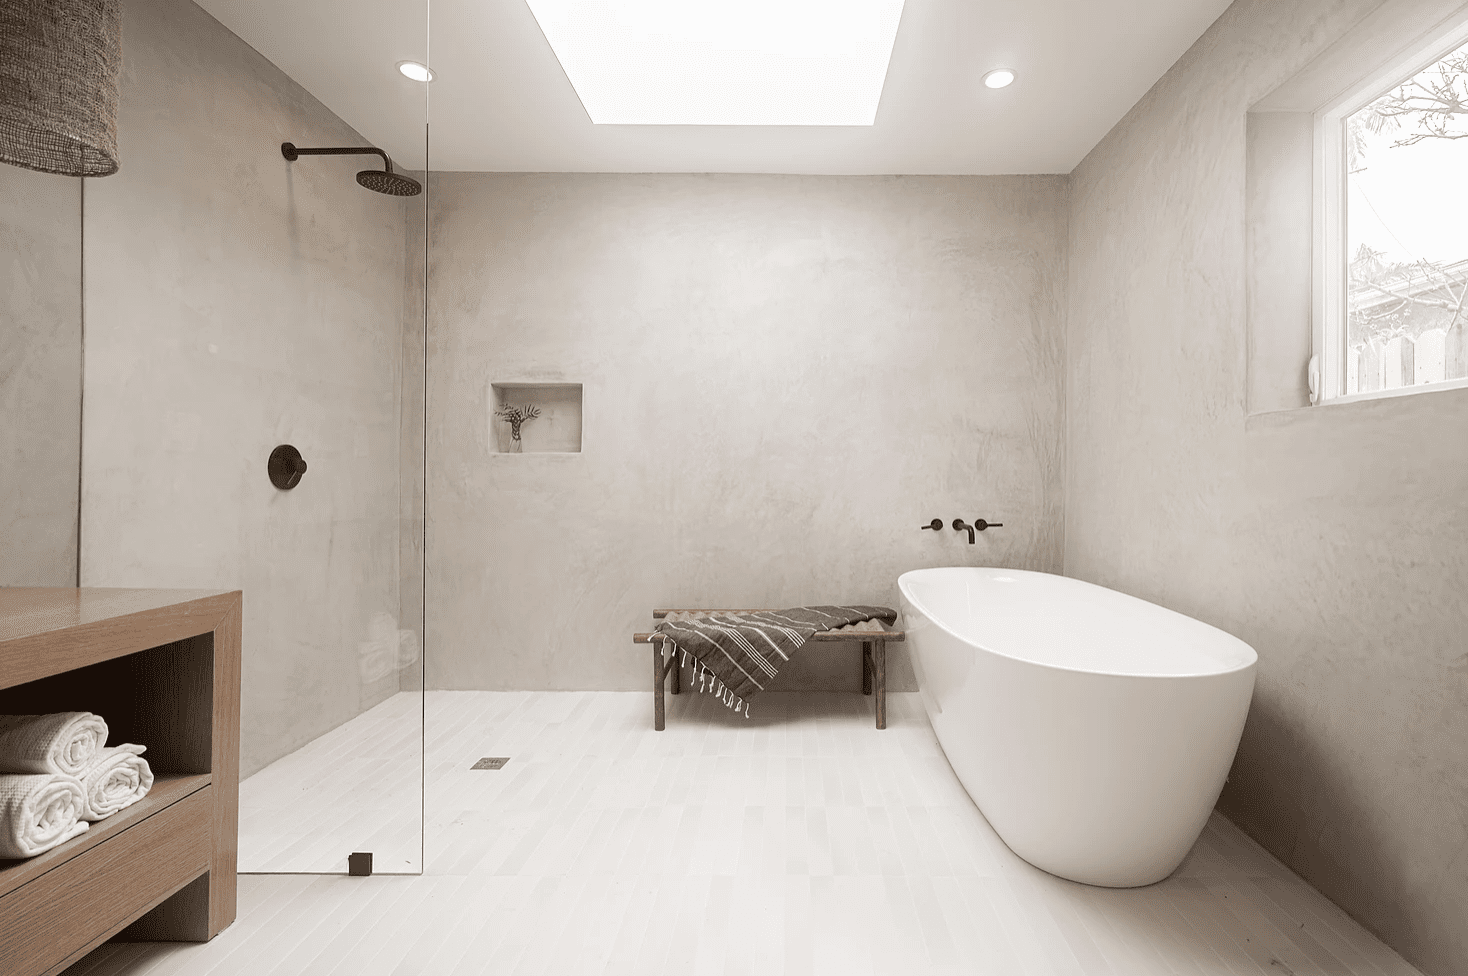 A bathroom covered in wall-to-wall cement